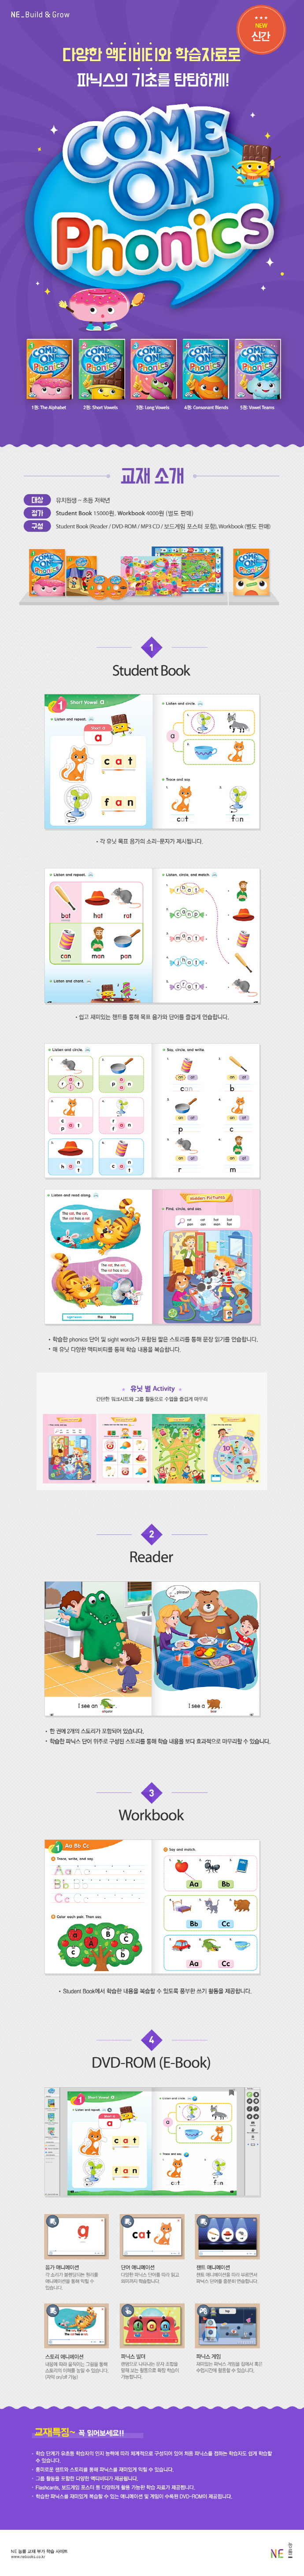 Come On Phonics. 2(Workbook) 도서 상세이미지